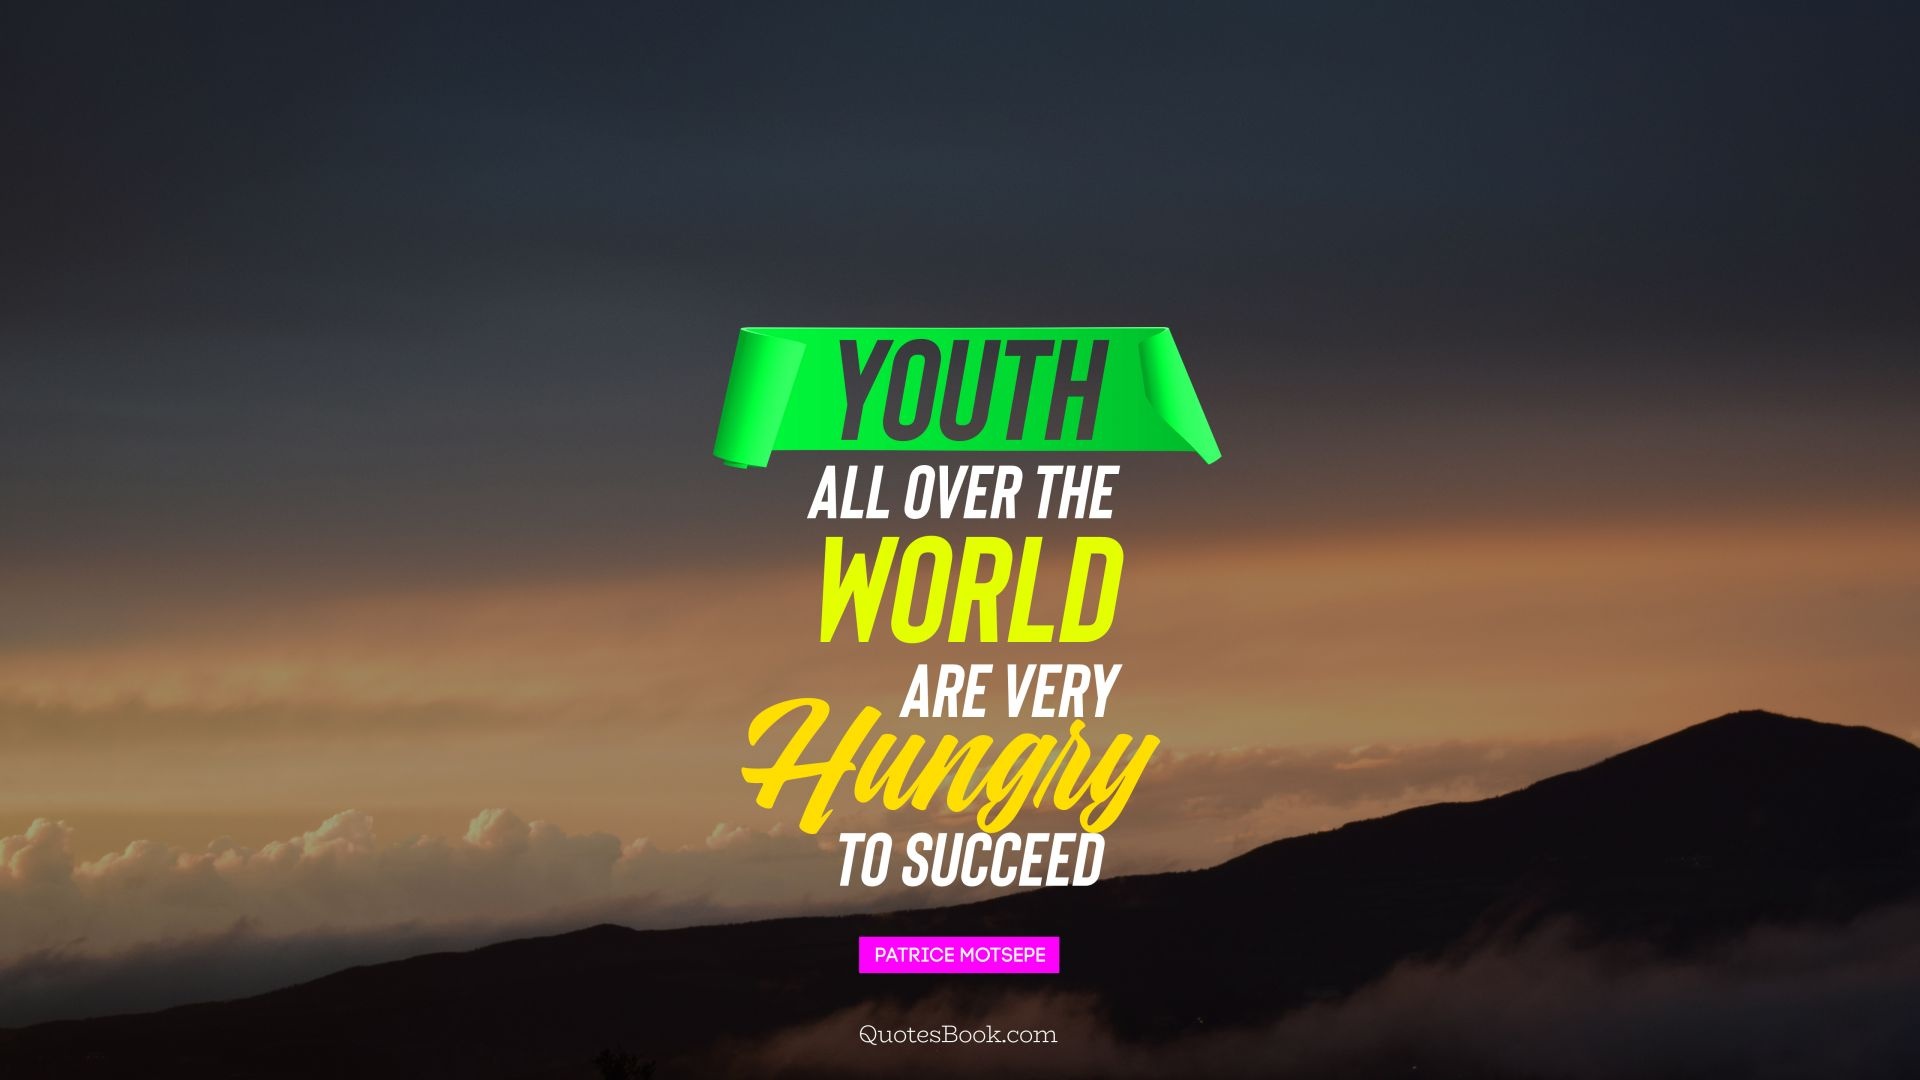 Youth all over the world are very hungry to succeed. - Quote by Patrice Motsepe